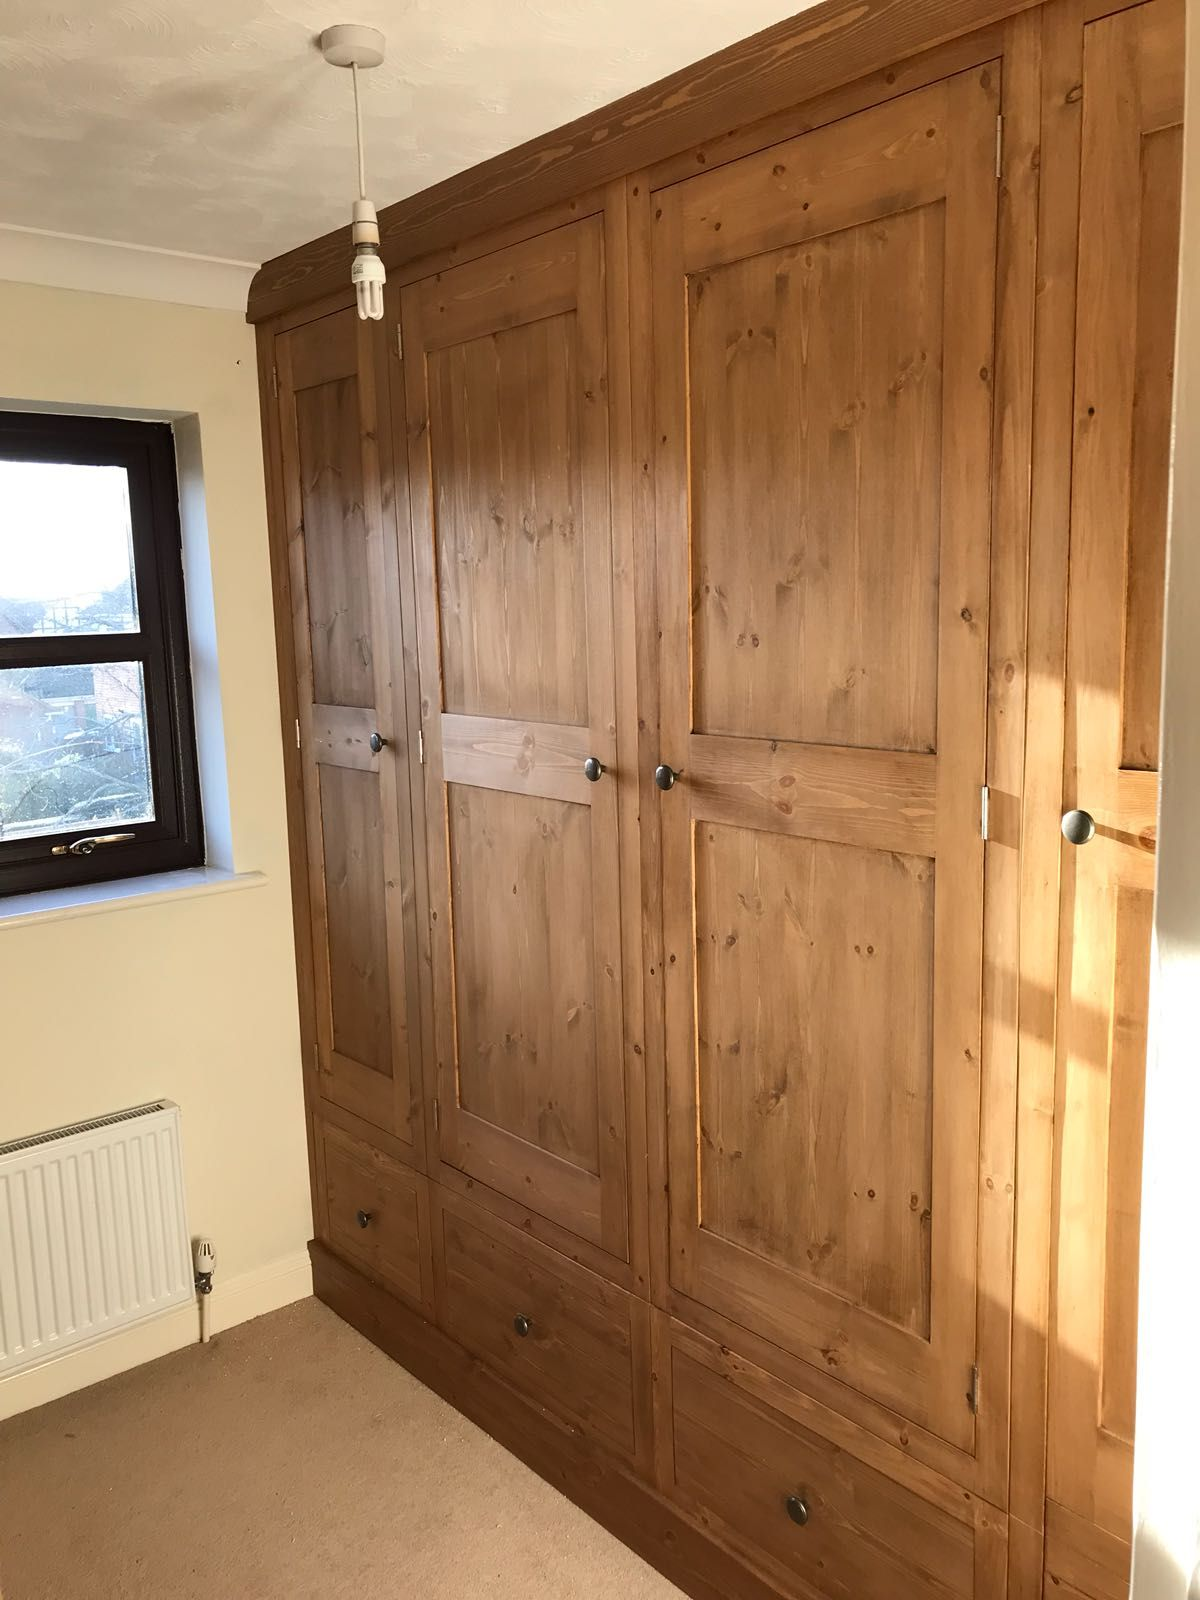 Fitted Pine Wardrobes Including Shelving Full Hanging And Double Hanging Rails Made To Order By Cobwebs Furnit Oak Bedroom Furniture Furniture Pine Furniture